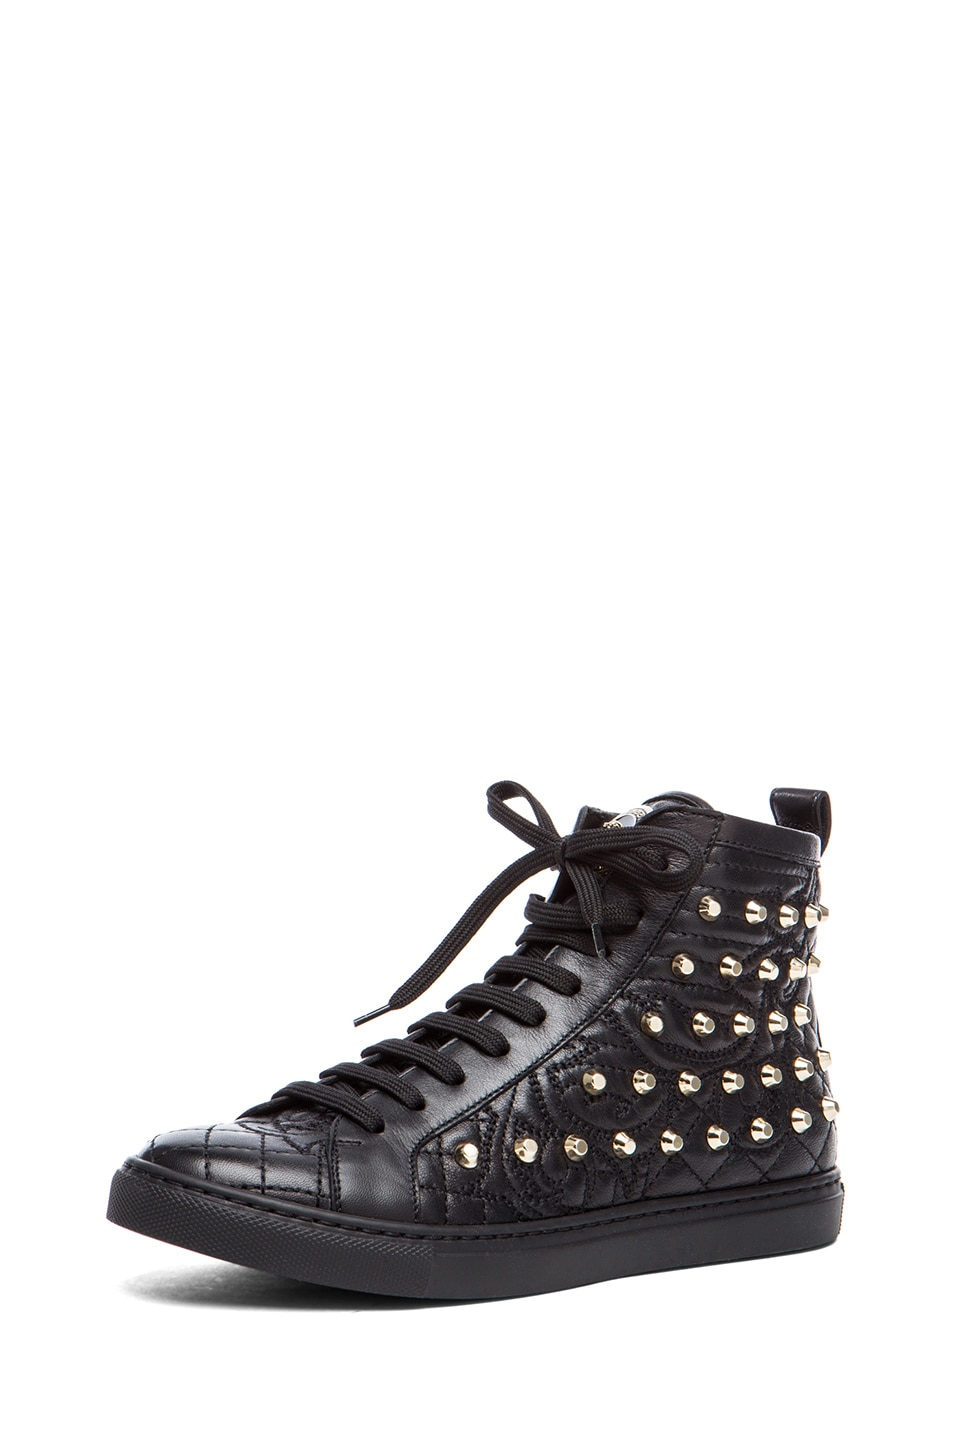 Image 2 of VERSACE Nappa Leather Studded Sneaker in Black & Gold